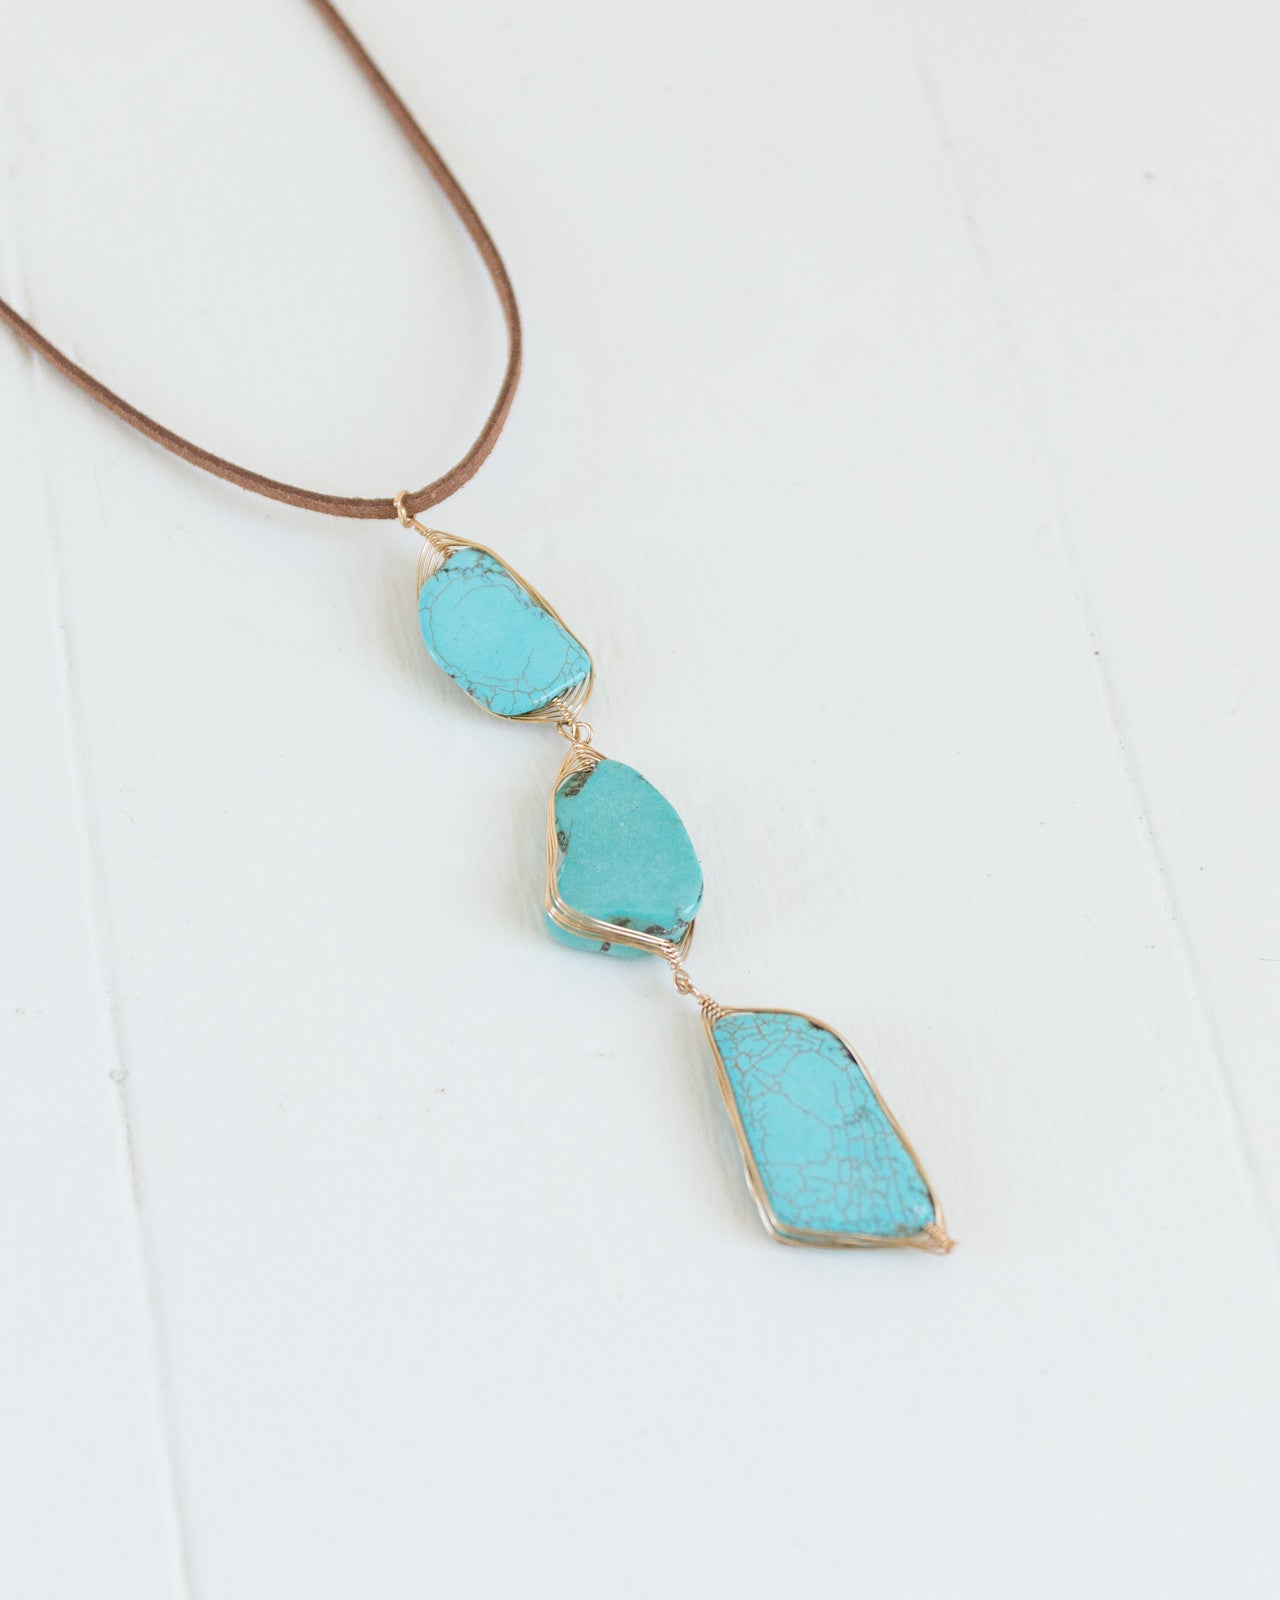 Triple Turquoise Necklace | Rose & Remington